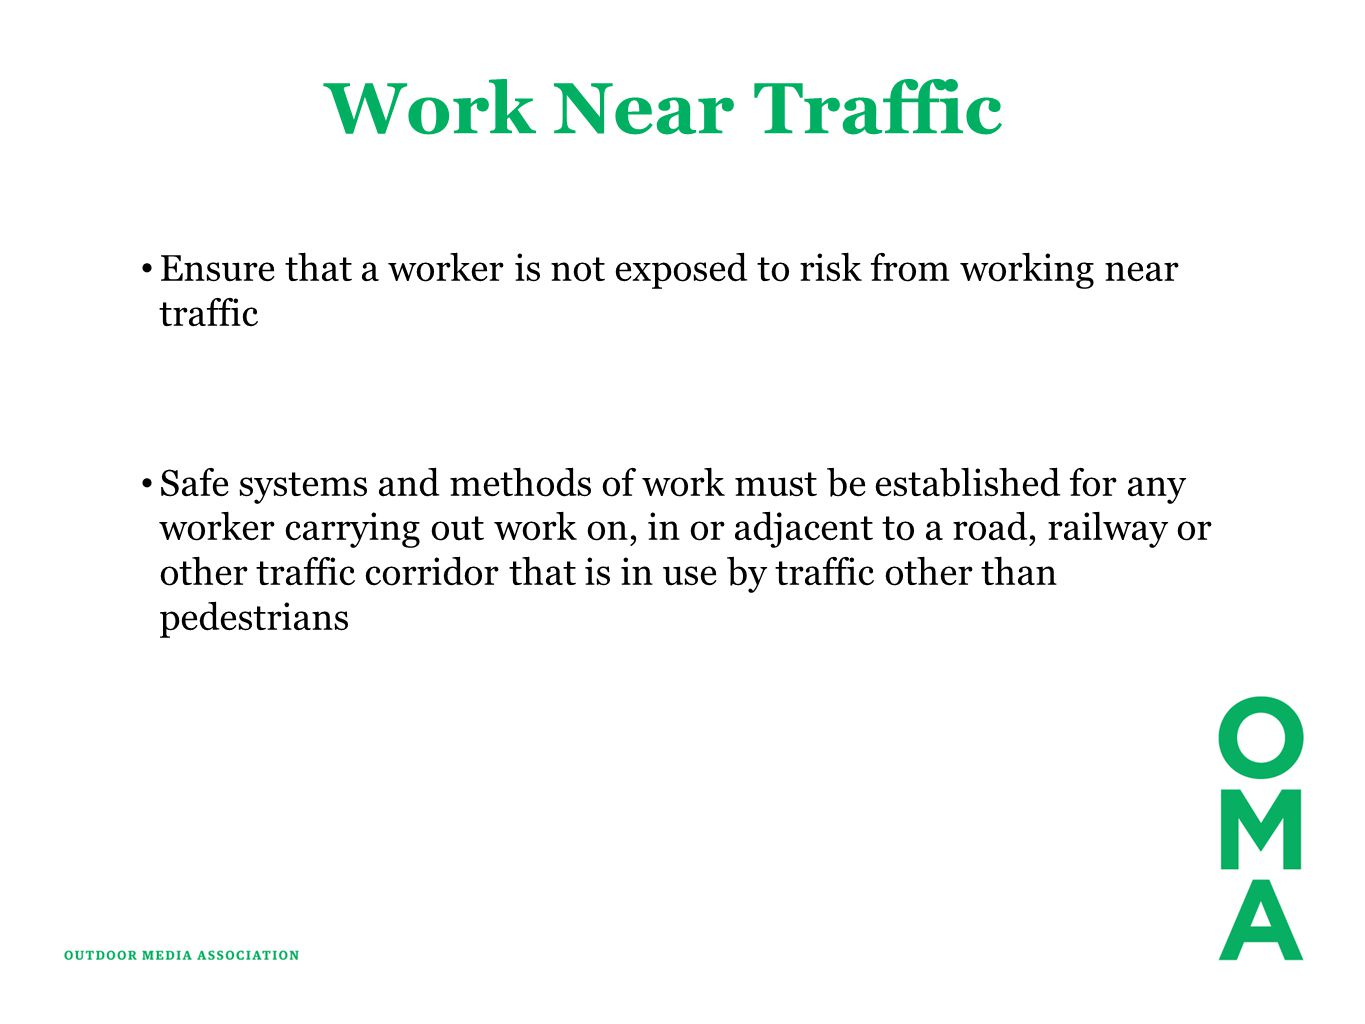 Work Near Traffic Ensure that a worker is not exposed to risk from working near traffic.